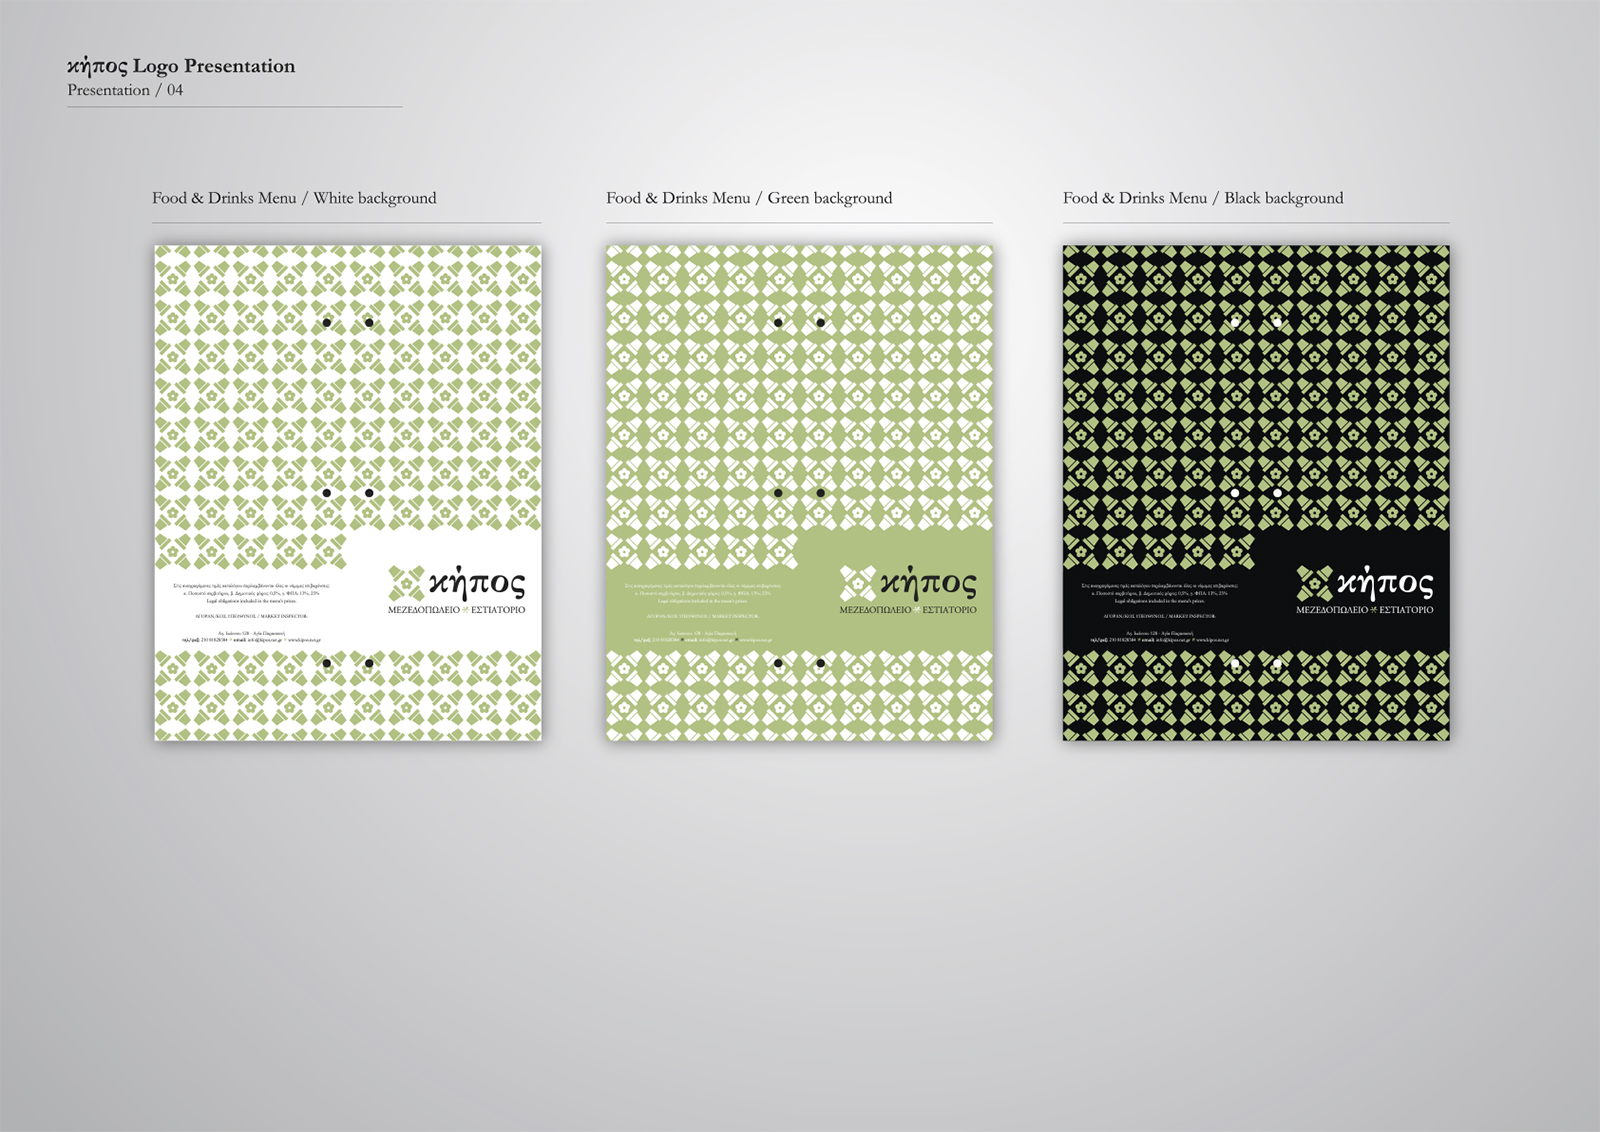 Corporate Identity Kipos Restaurant_Logo presentation_4_Yianart